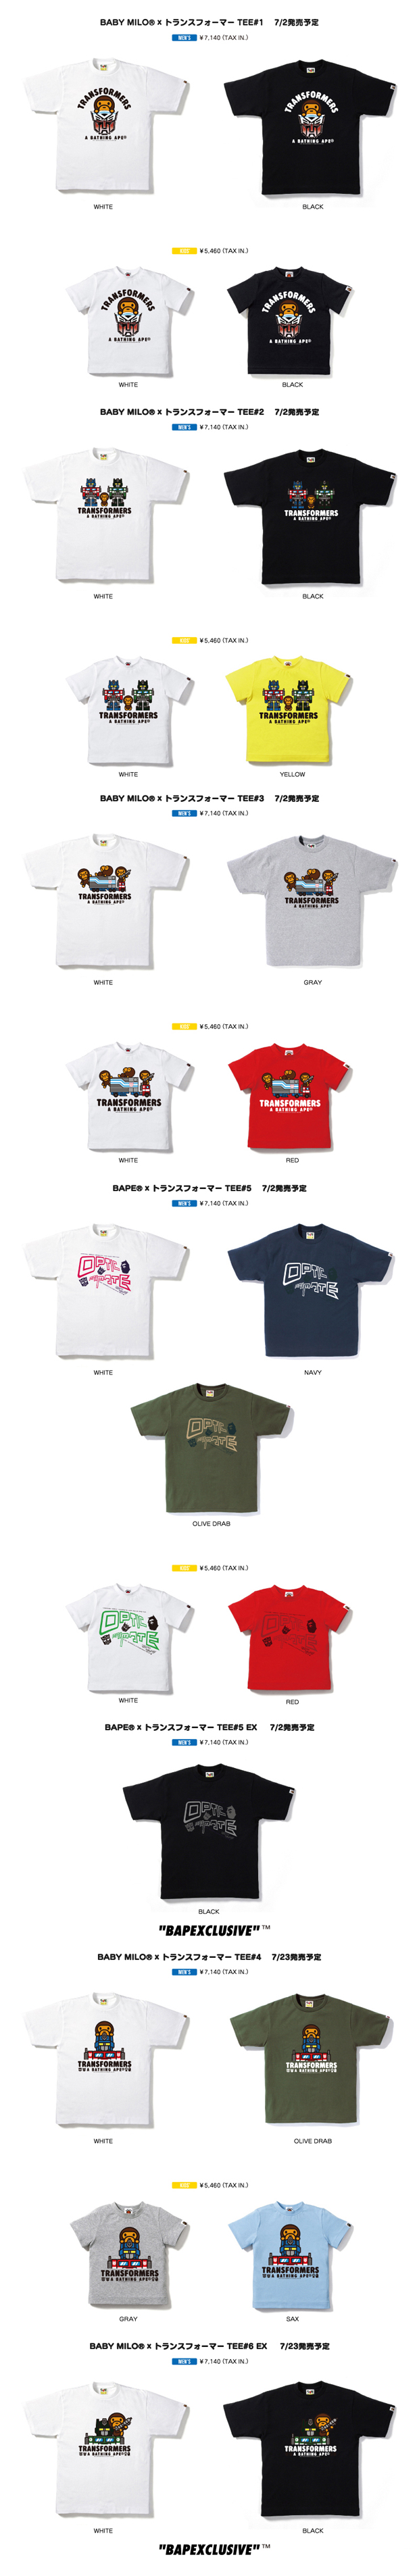 a bathing ape x transformers capsule collection